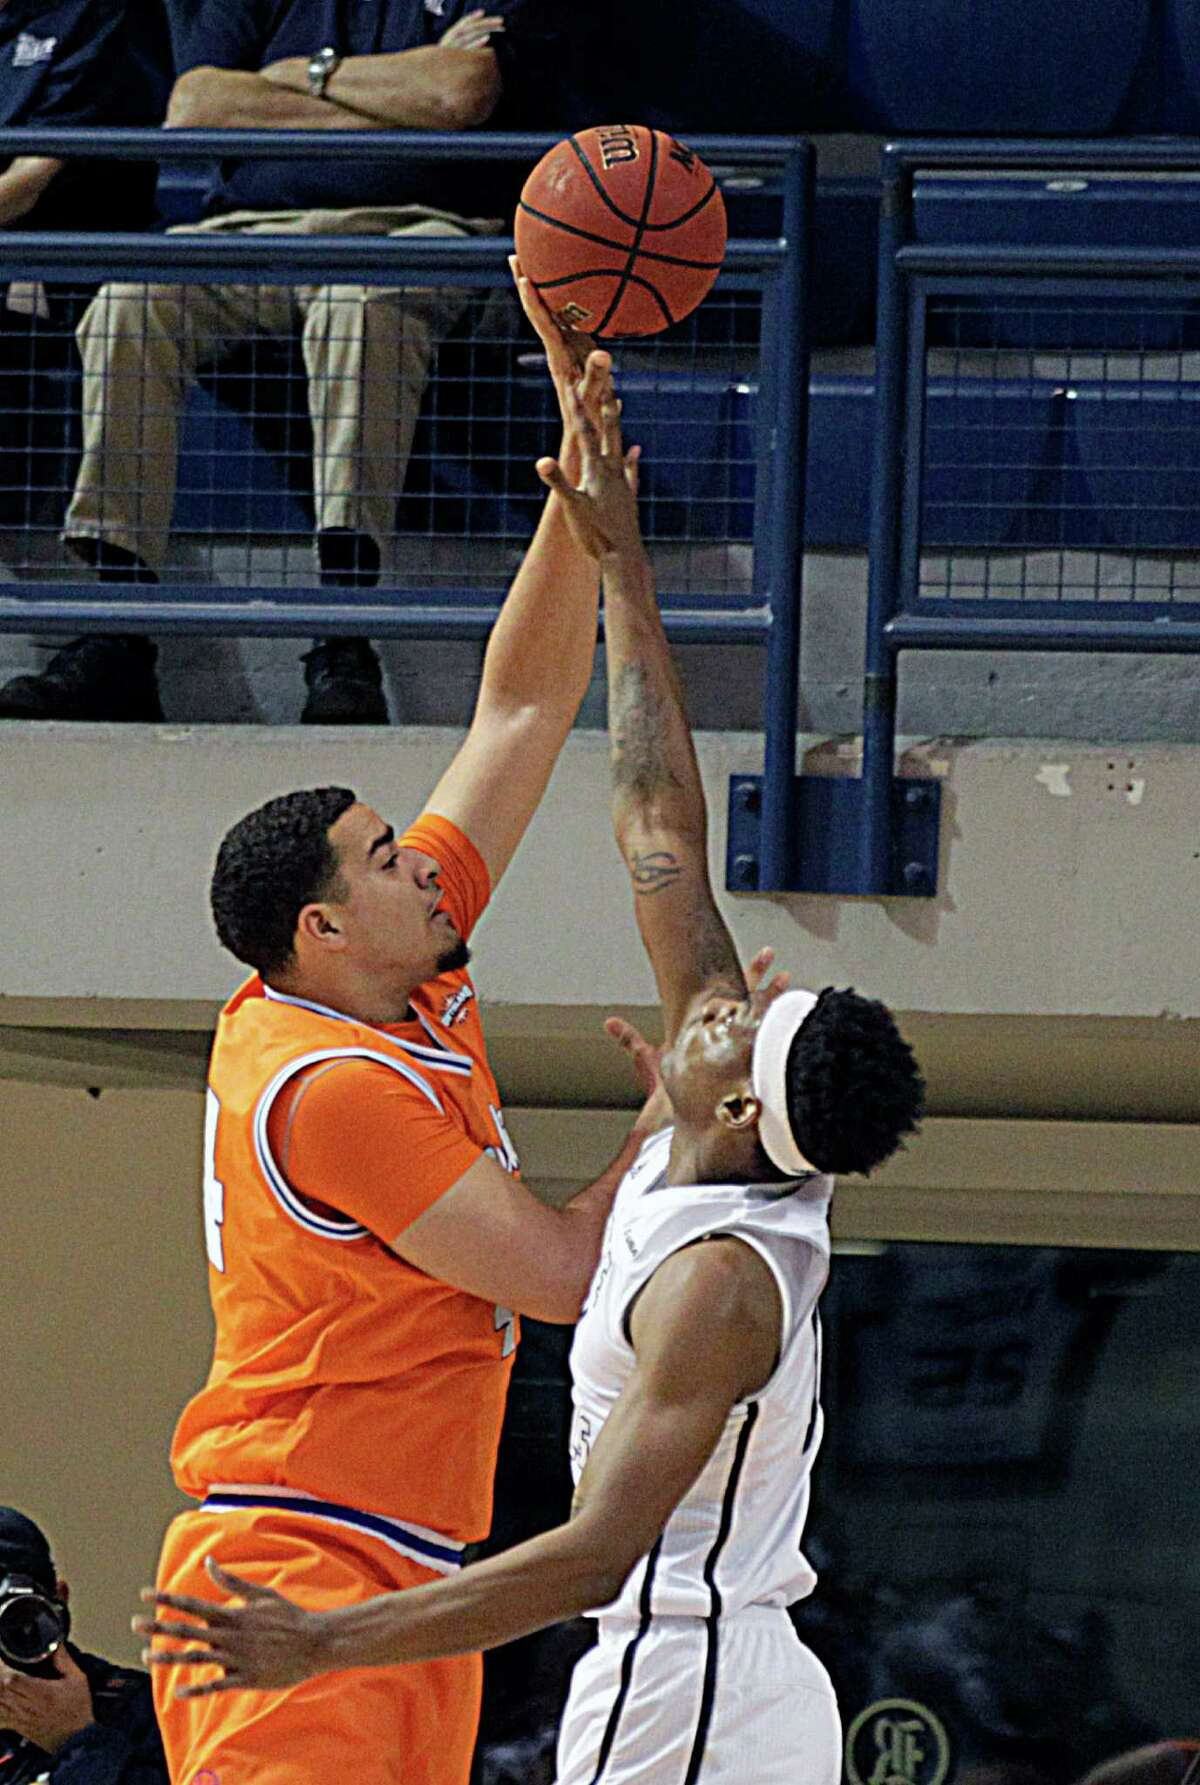 Houston Baptist center Josh Ibarra left, shoots over Rice forward Corey Douglas right, during the first half of men's college basketball game action at Tudor Fieldhouse Nov. 30, 2016, in Houston.